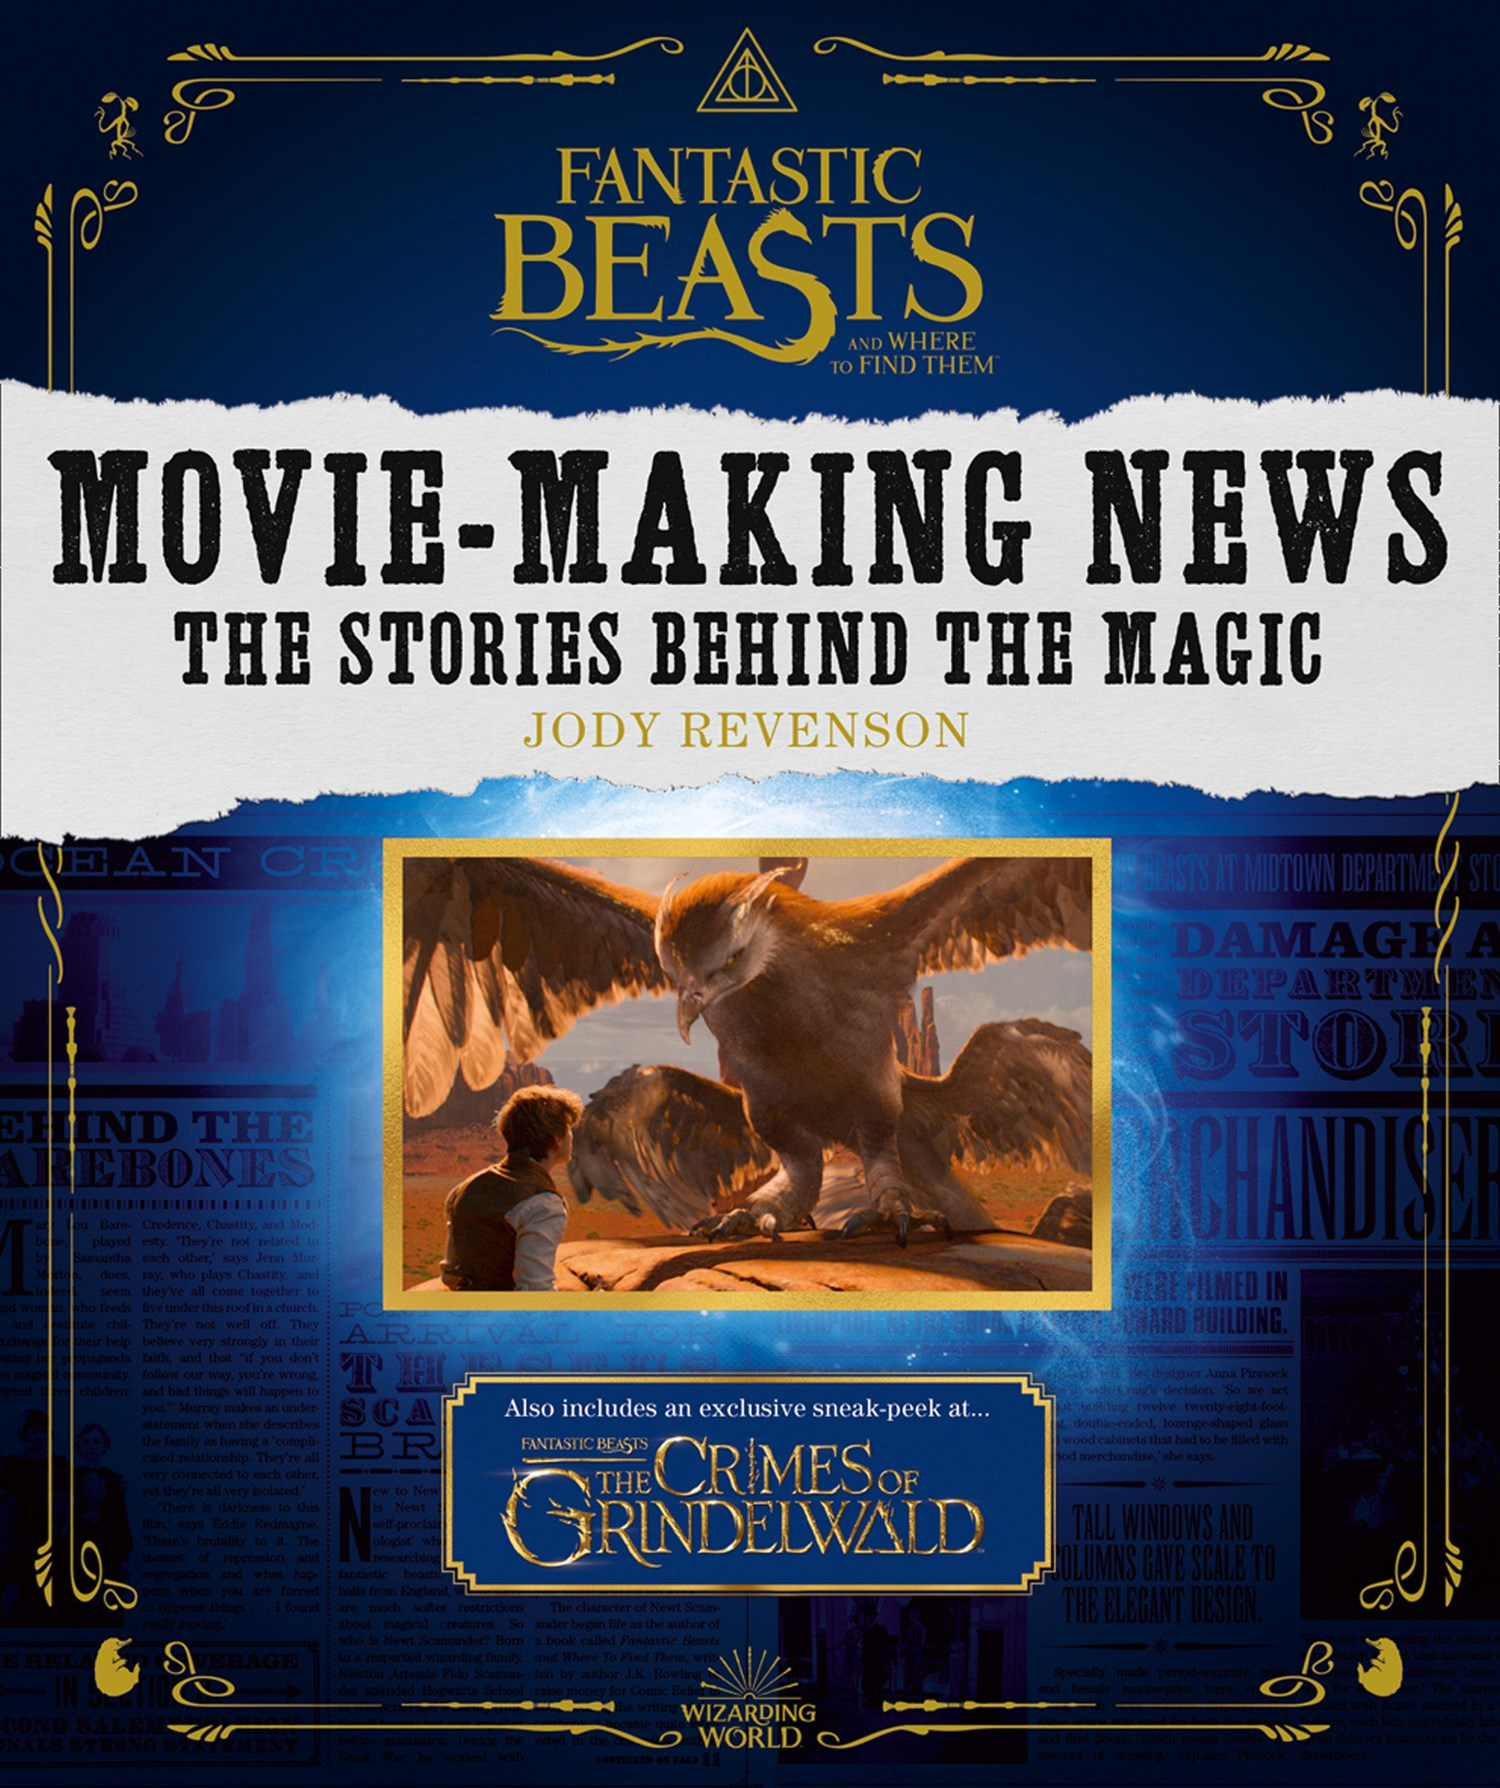 Fantastic Beasts: Wizarding World News